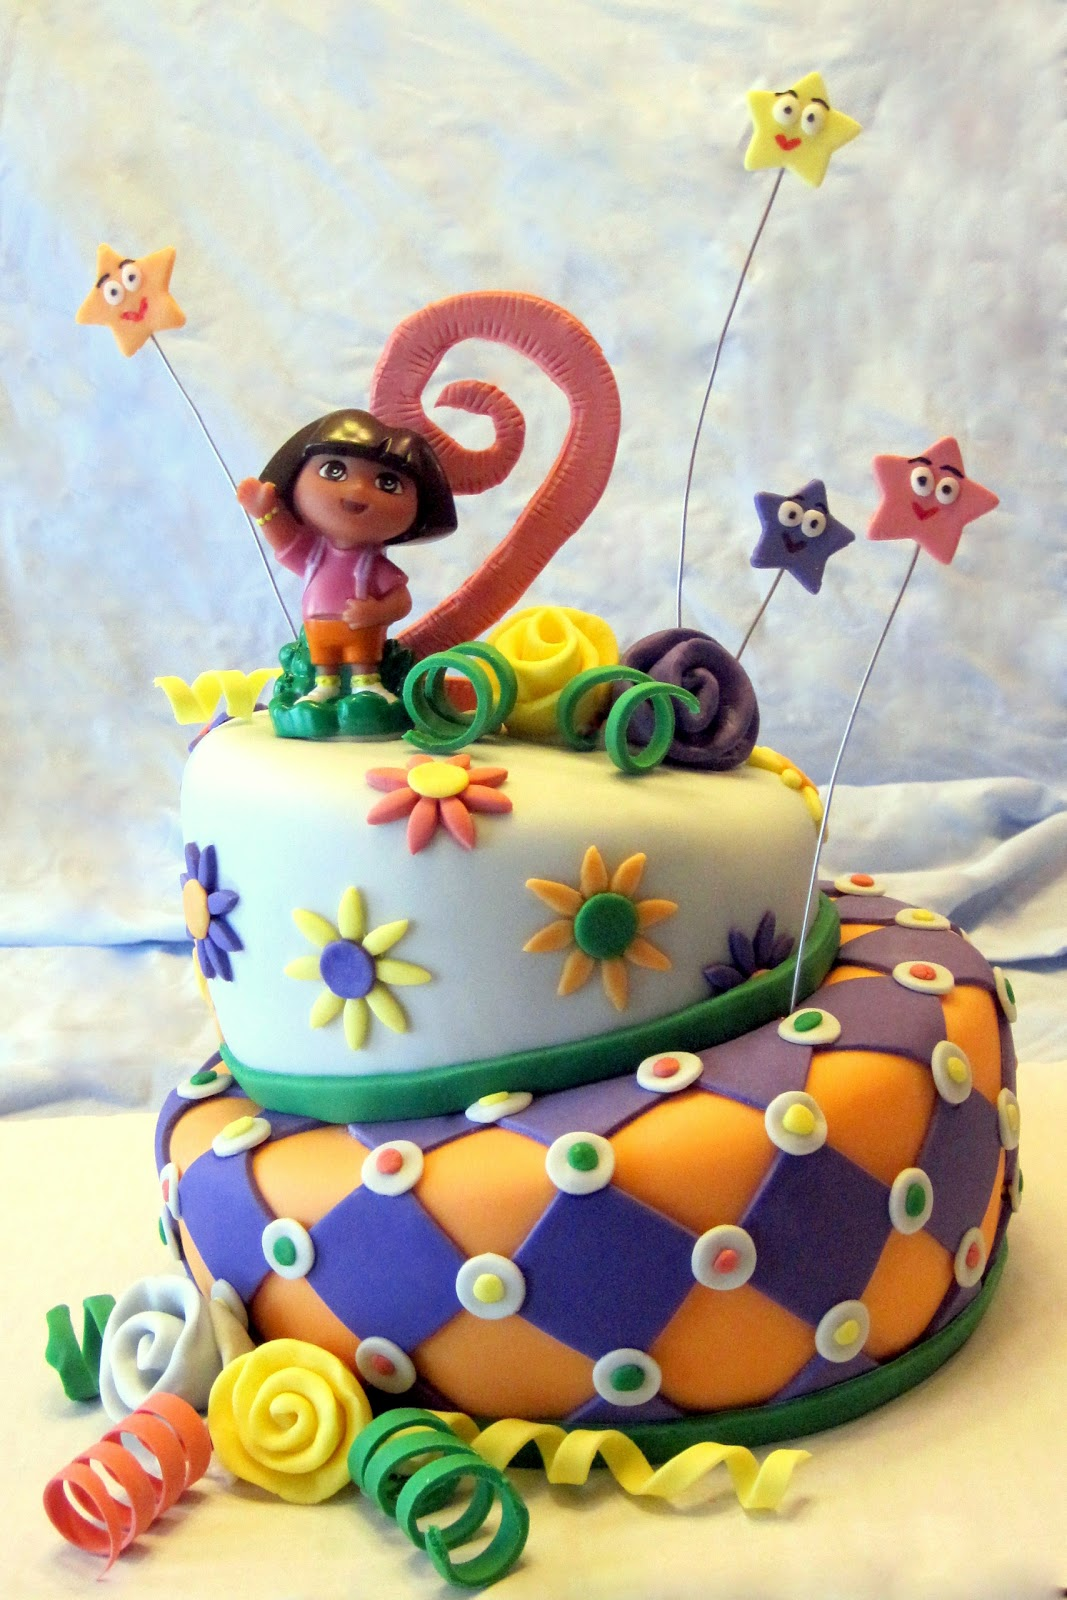 Pin Pooh And Friends Birthday Cake Similar Design To The Dora Cake